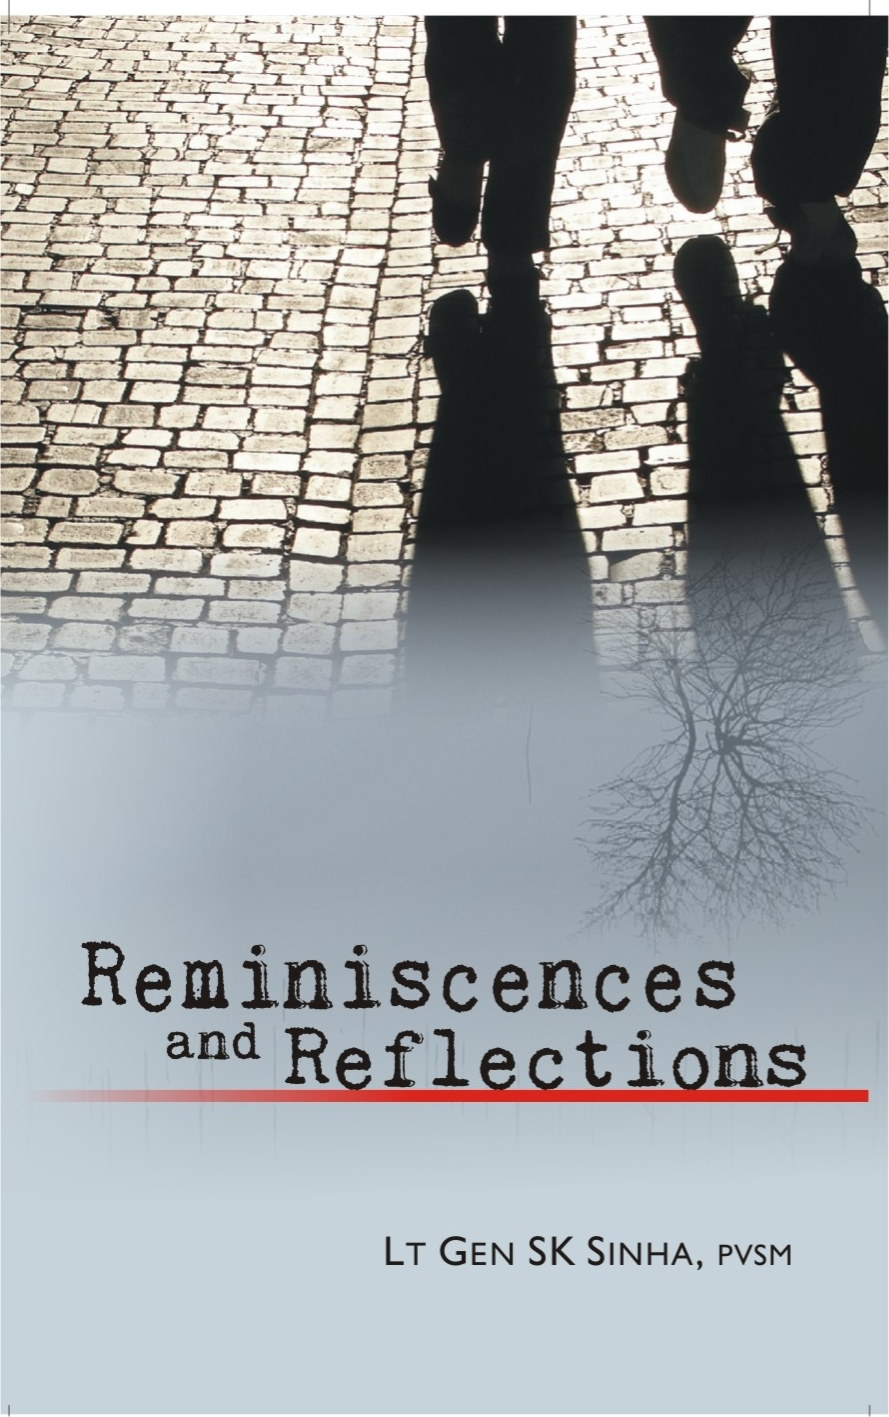 Reminiscences and Reflections